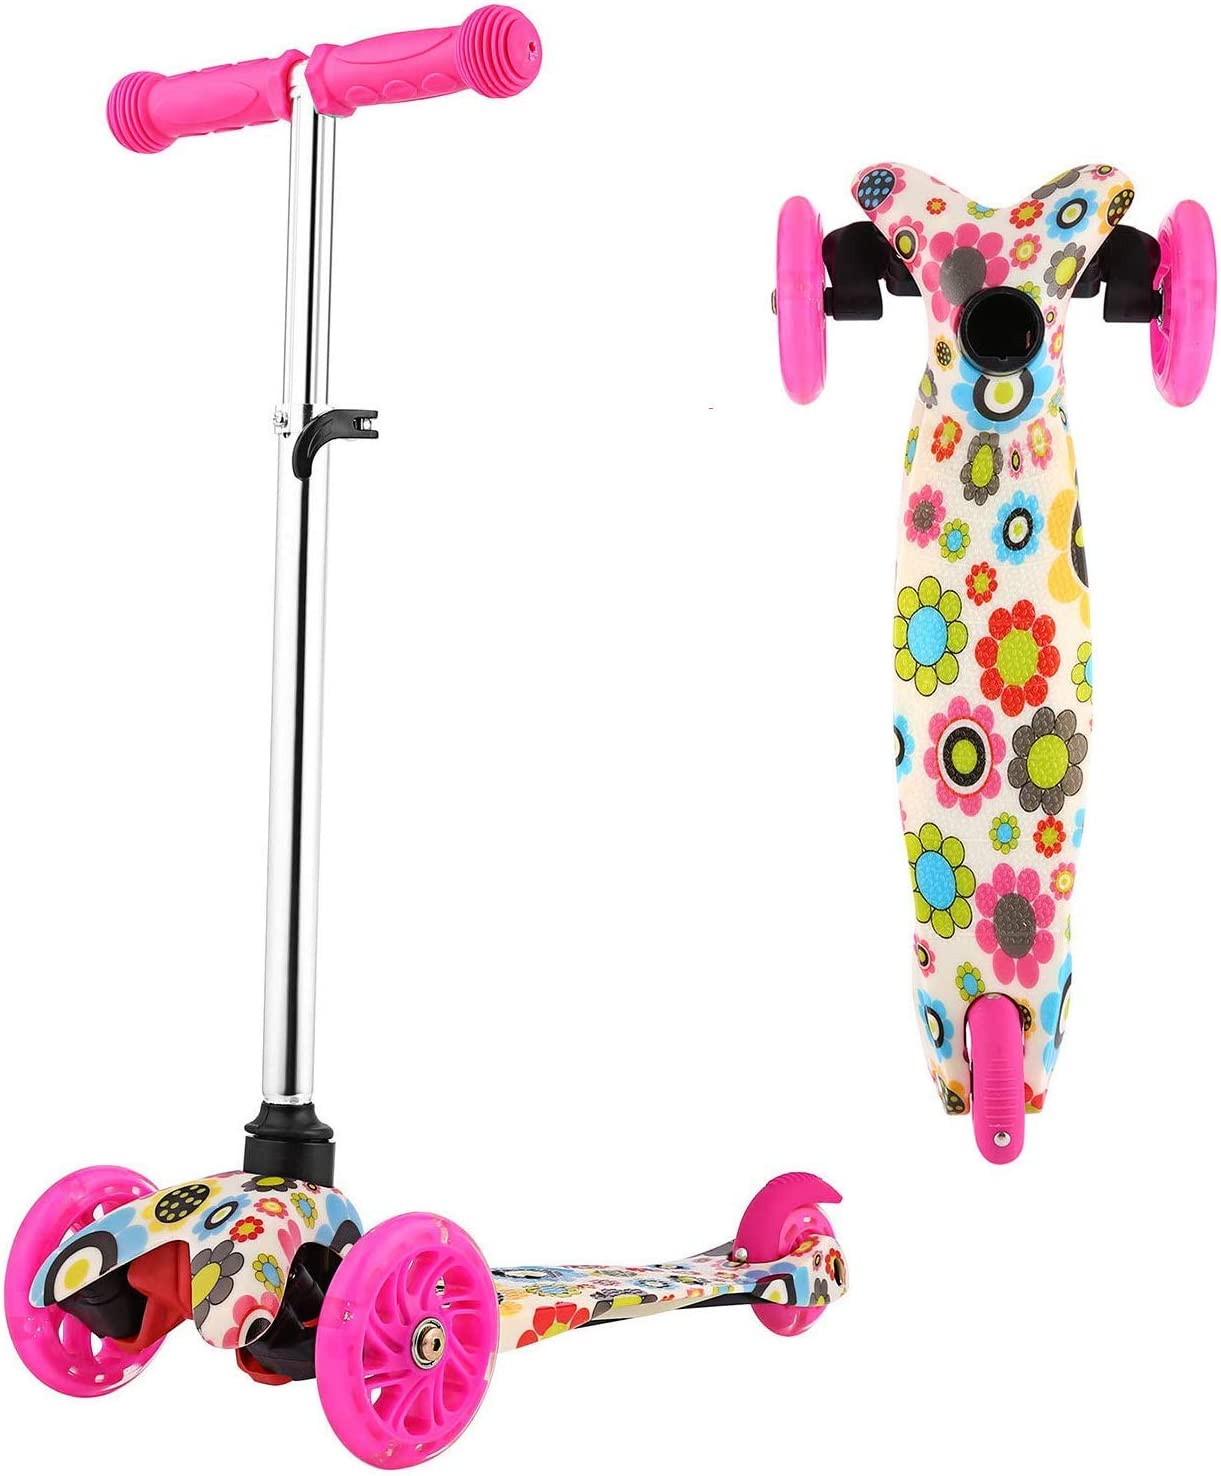 Scooter for Kids 3 Wheel Toddler Scooter with LED Light, Height Adjustable Kids Scooter for Boys Girls Age 2-8 Years Old